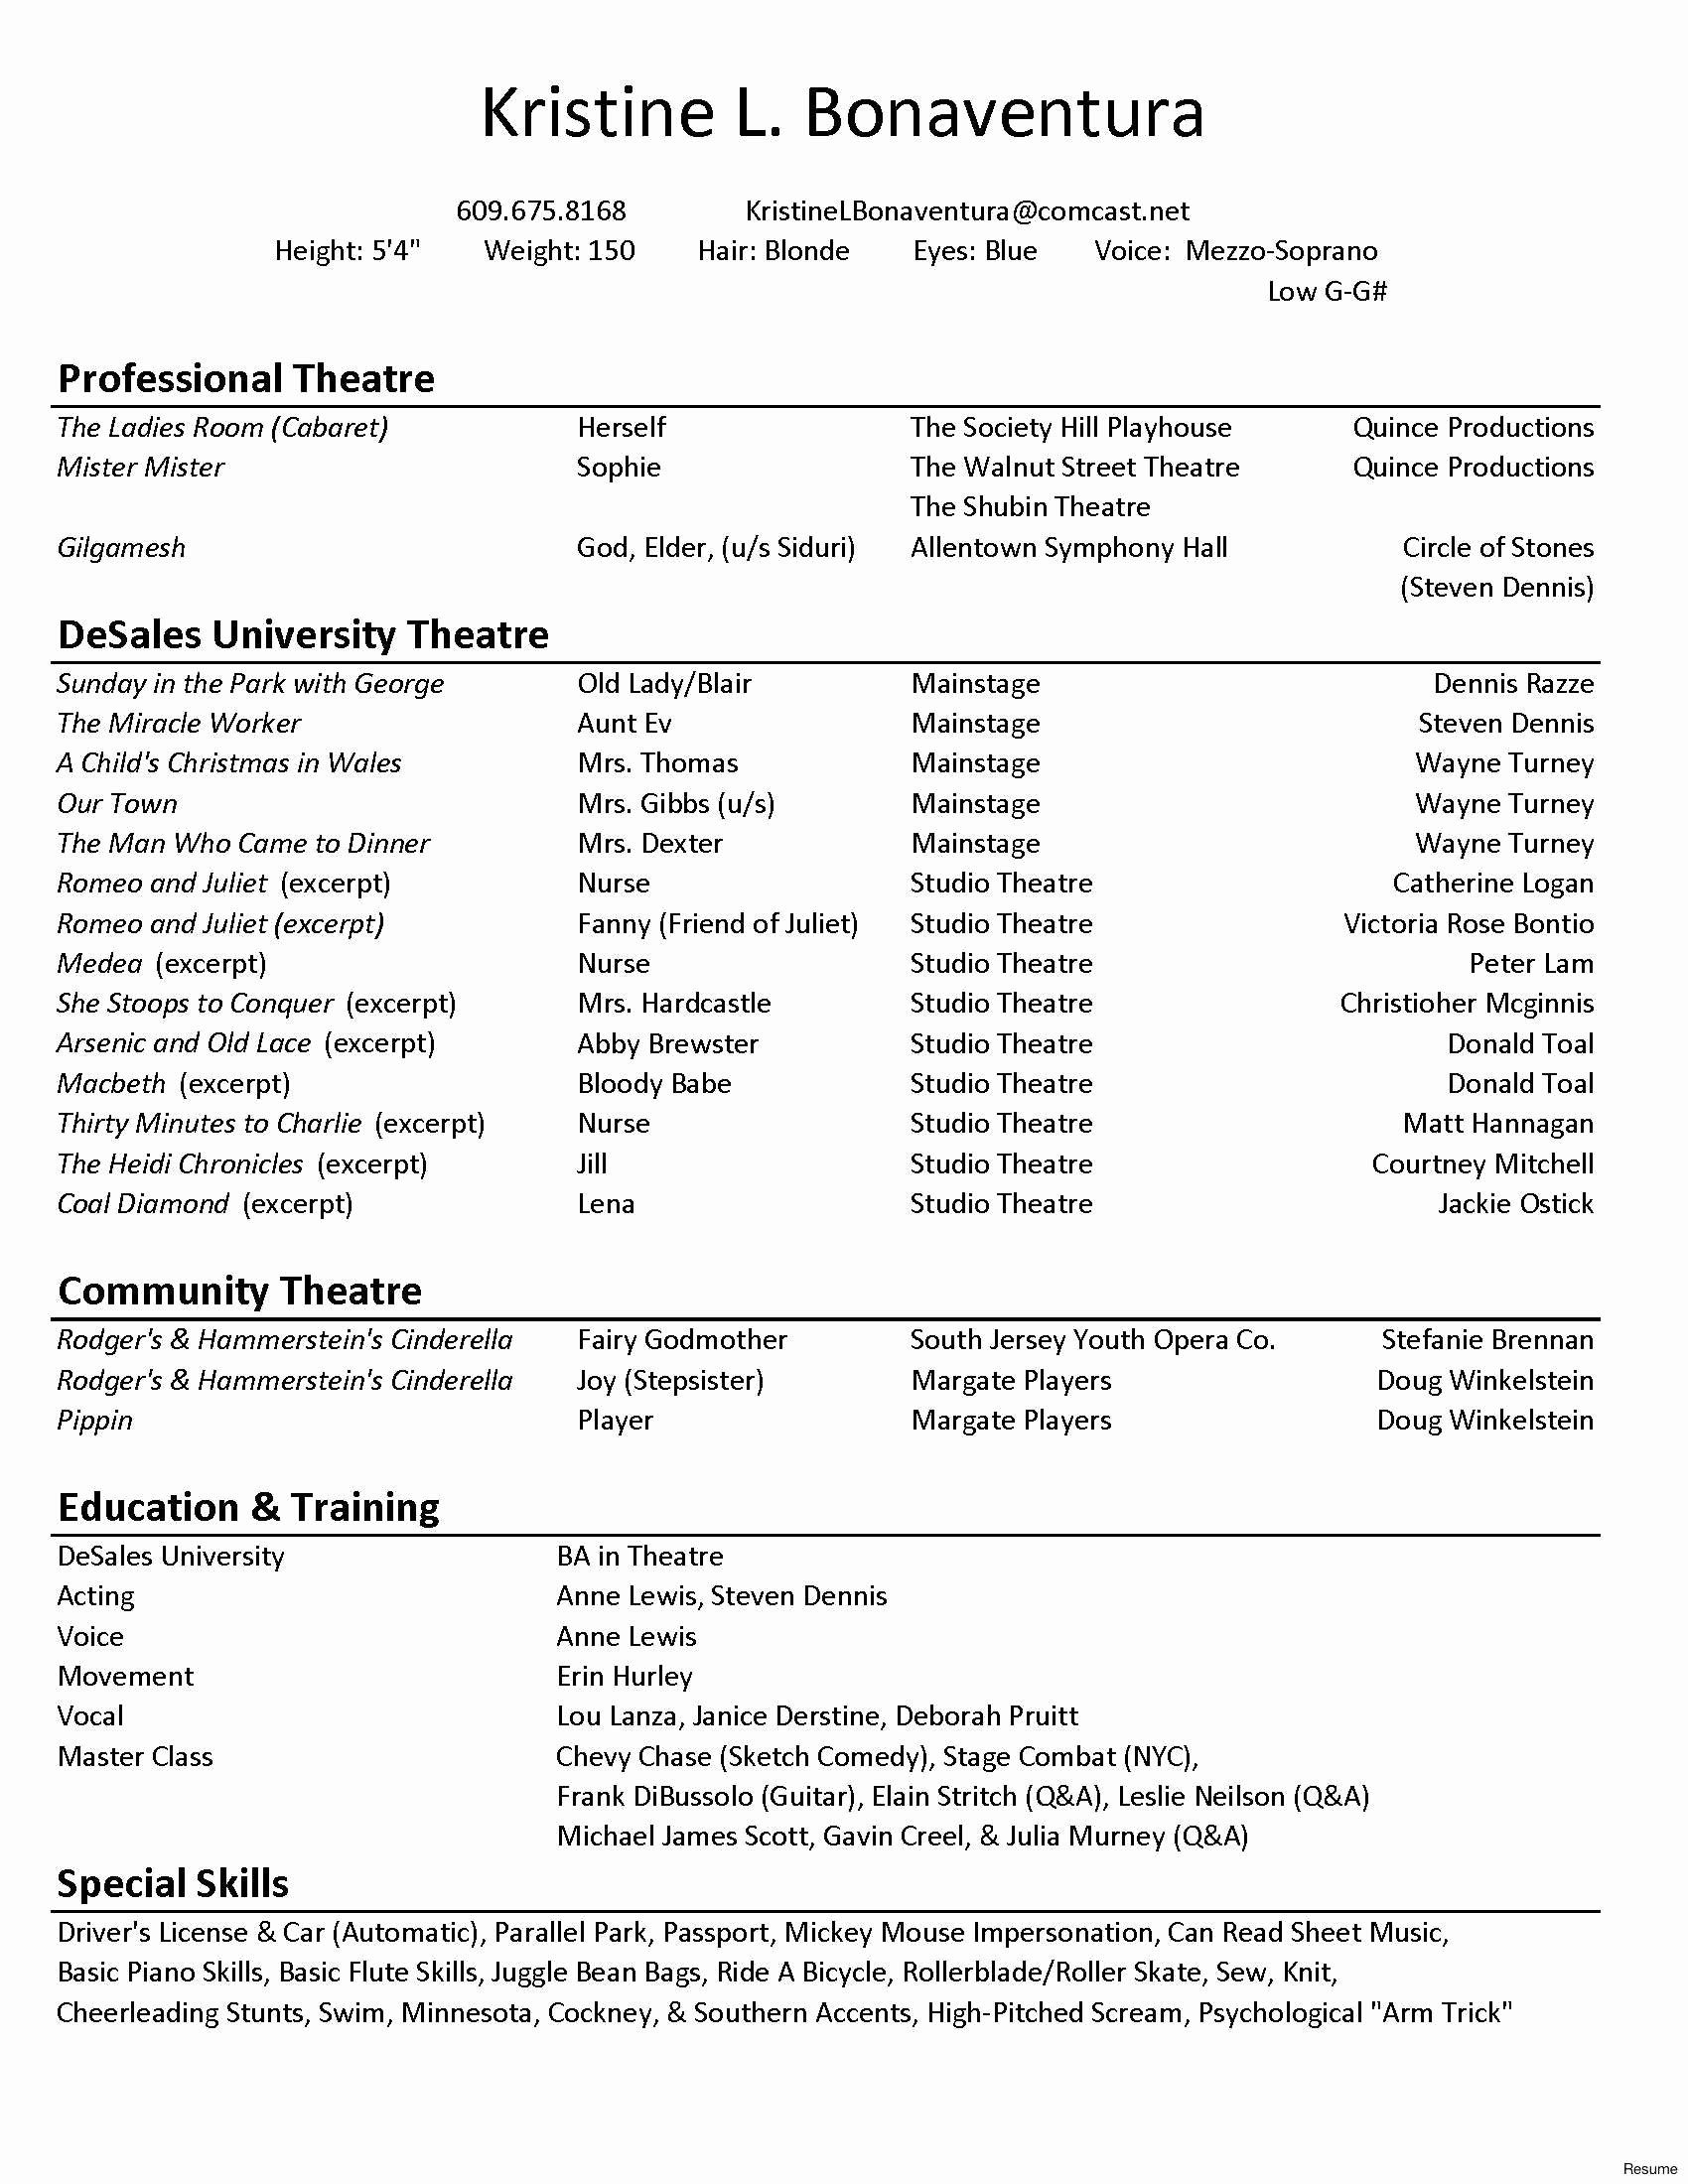 technical theatre resume template inspirational acting legal secretary sample for Resume Technical Theatre Resume Template